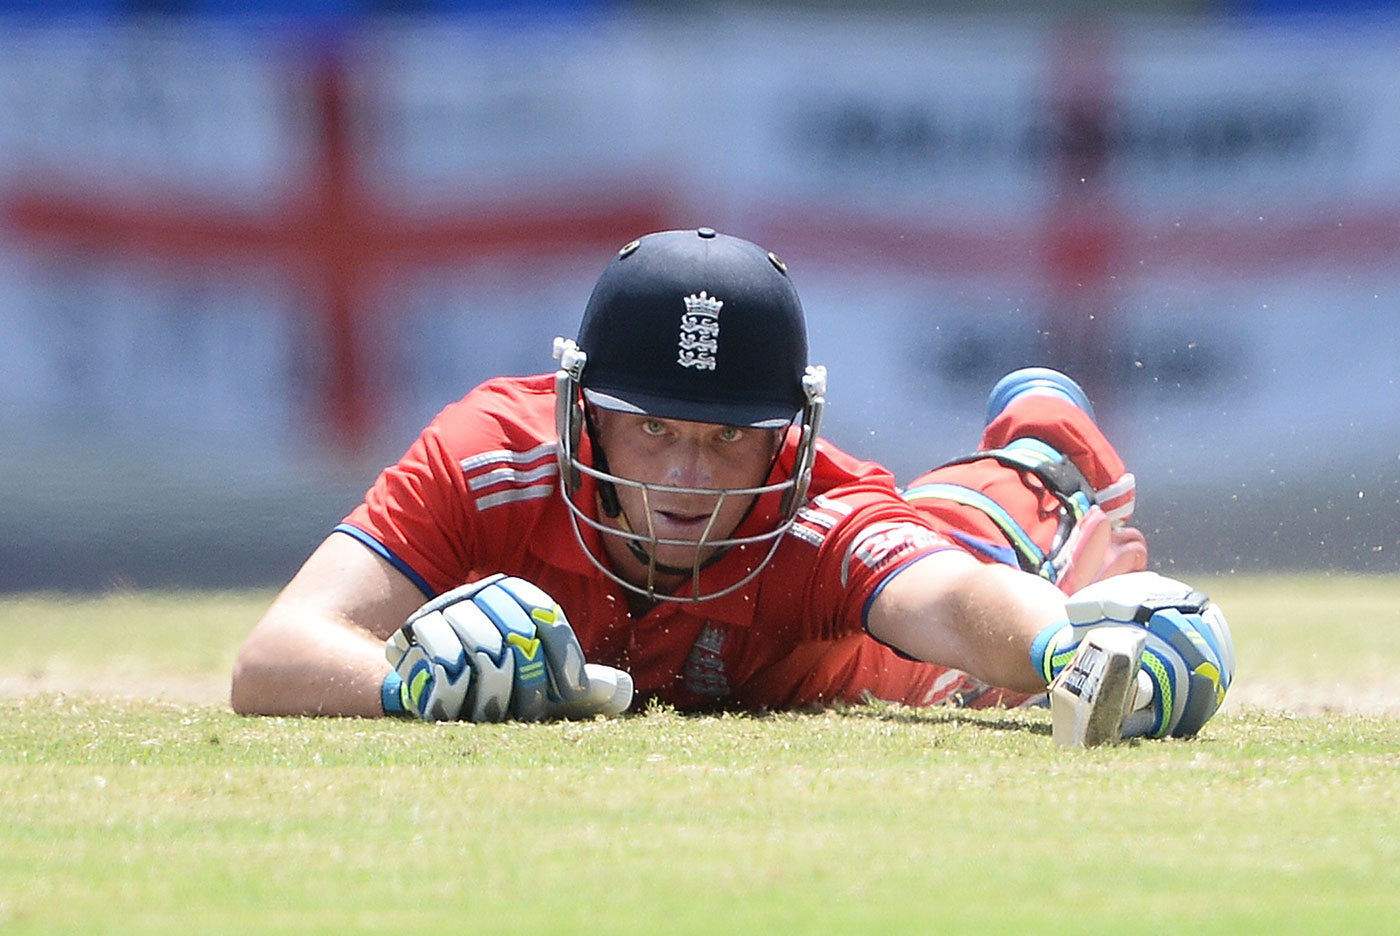 Jos Buttler dives into the crease